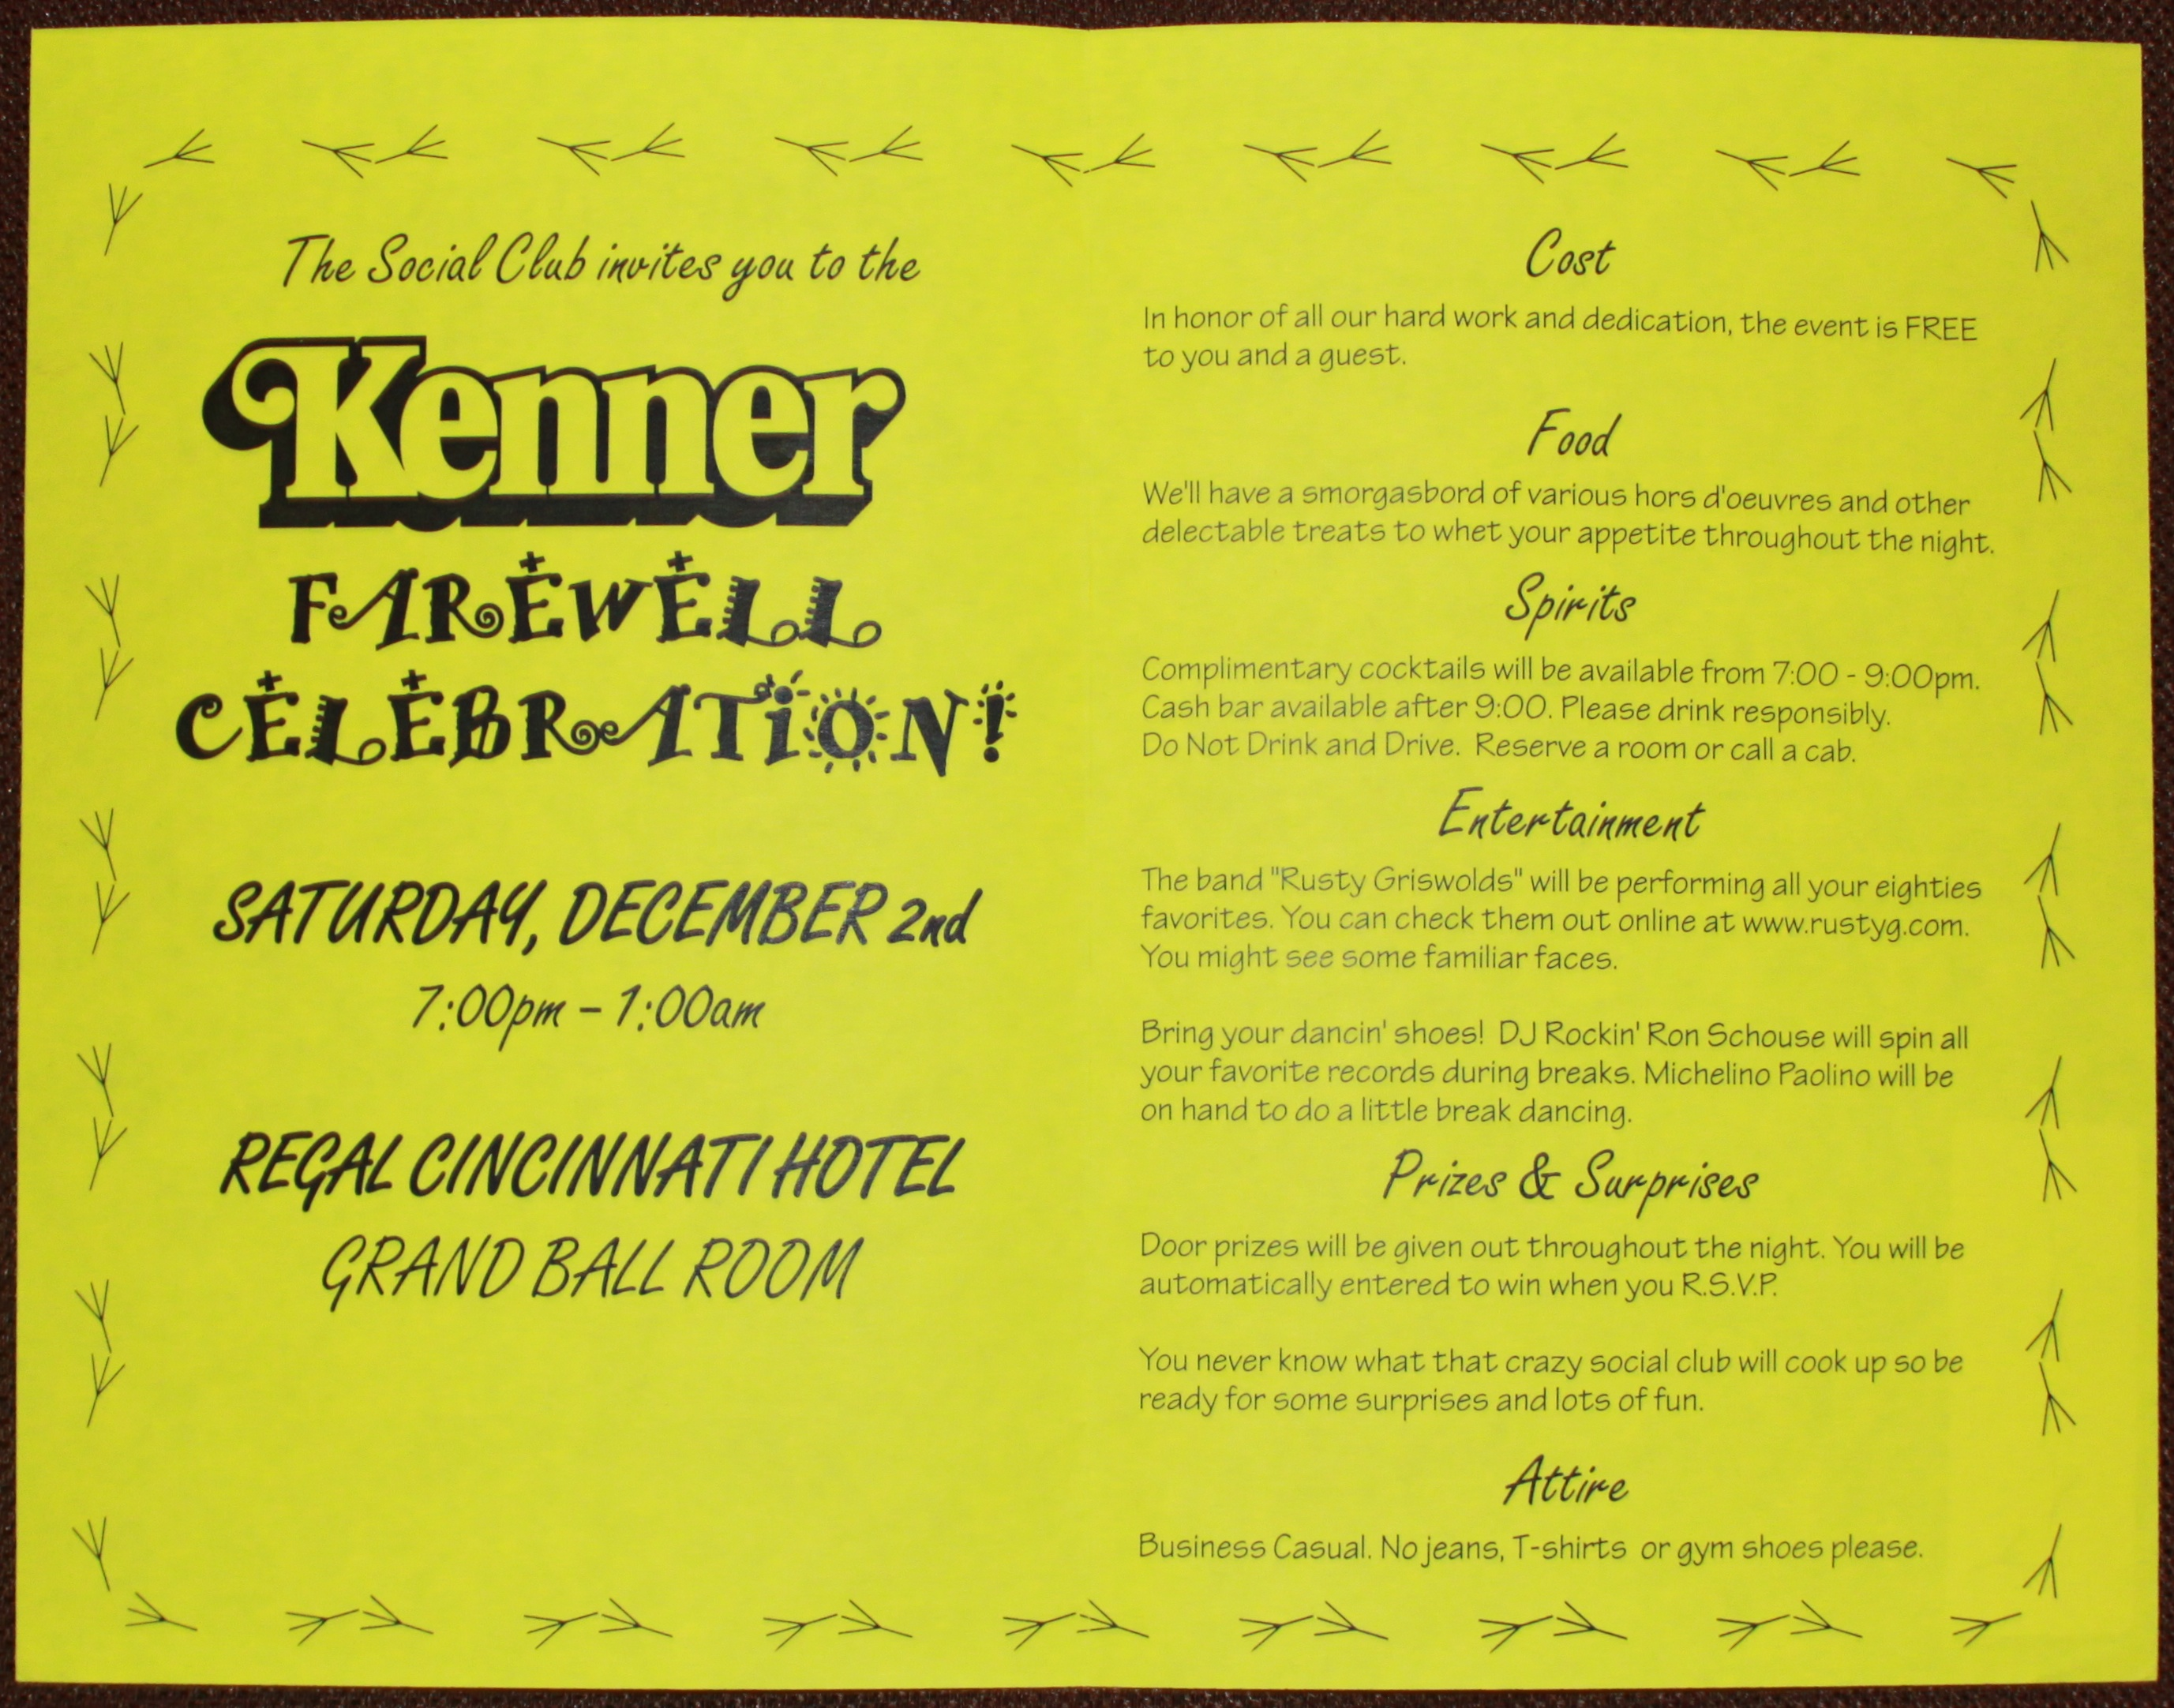 Kenner Employee Farewell Invitation – Free Going Away Party Invitation Templates